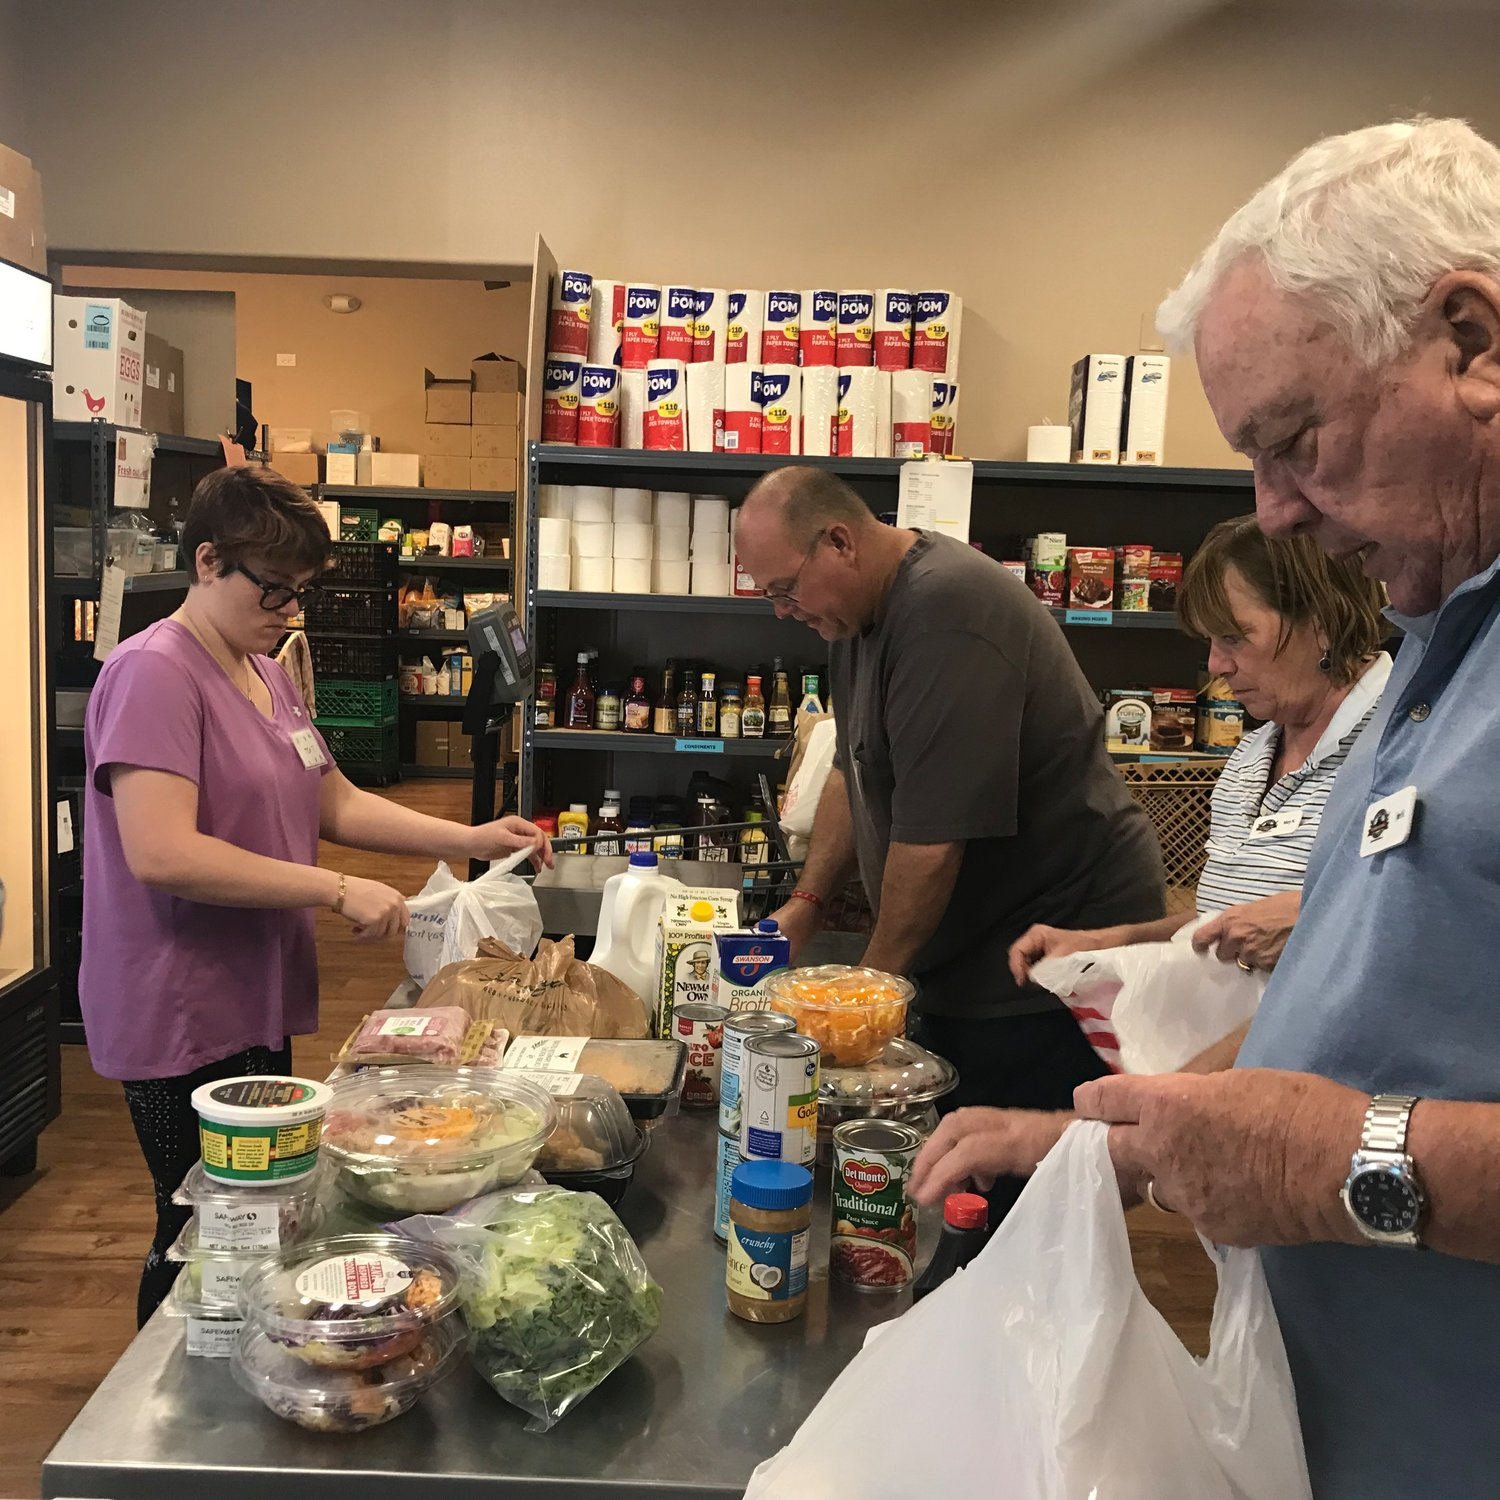 The Foothills Food Bank & Resource Center at 34501 Old Black Canyon Highway in Black Canyon City.